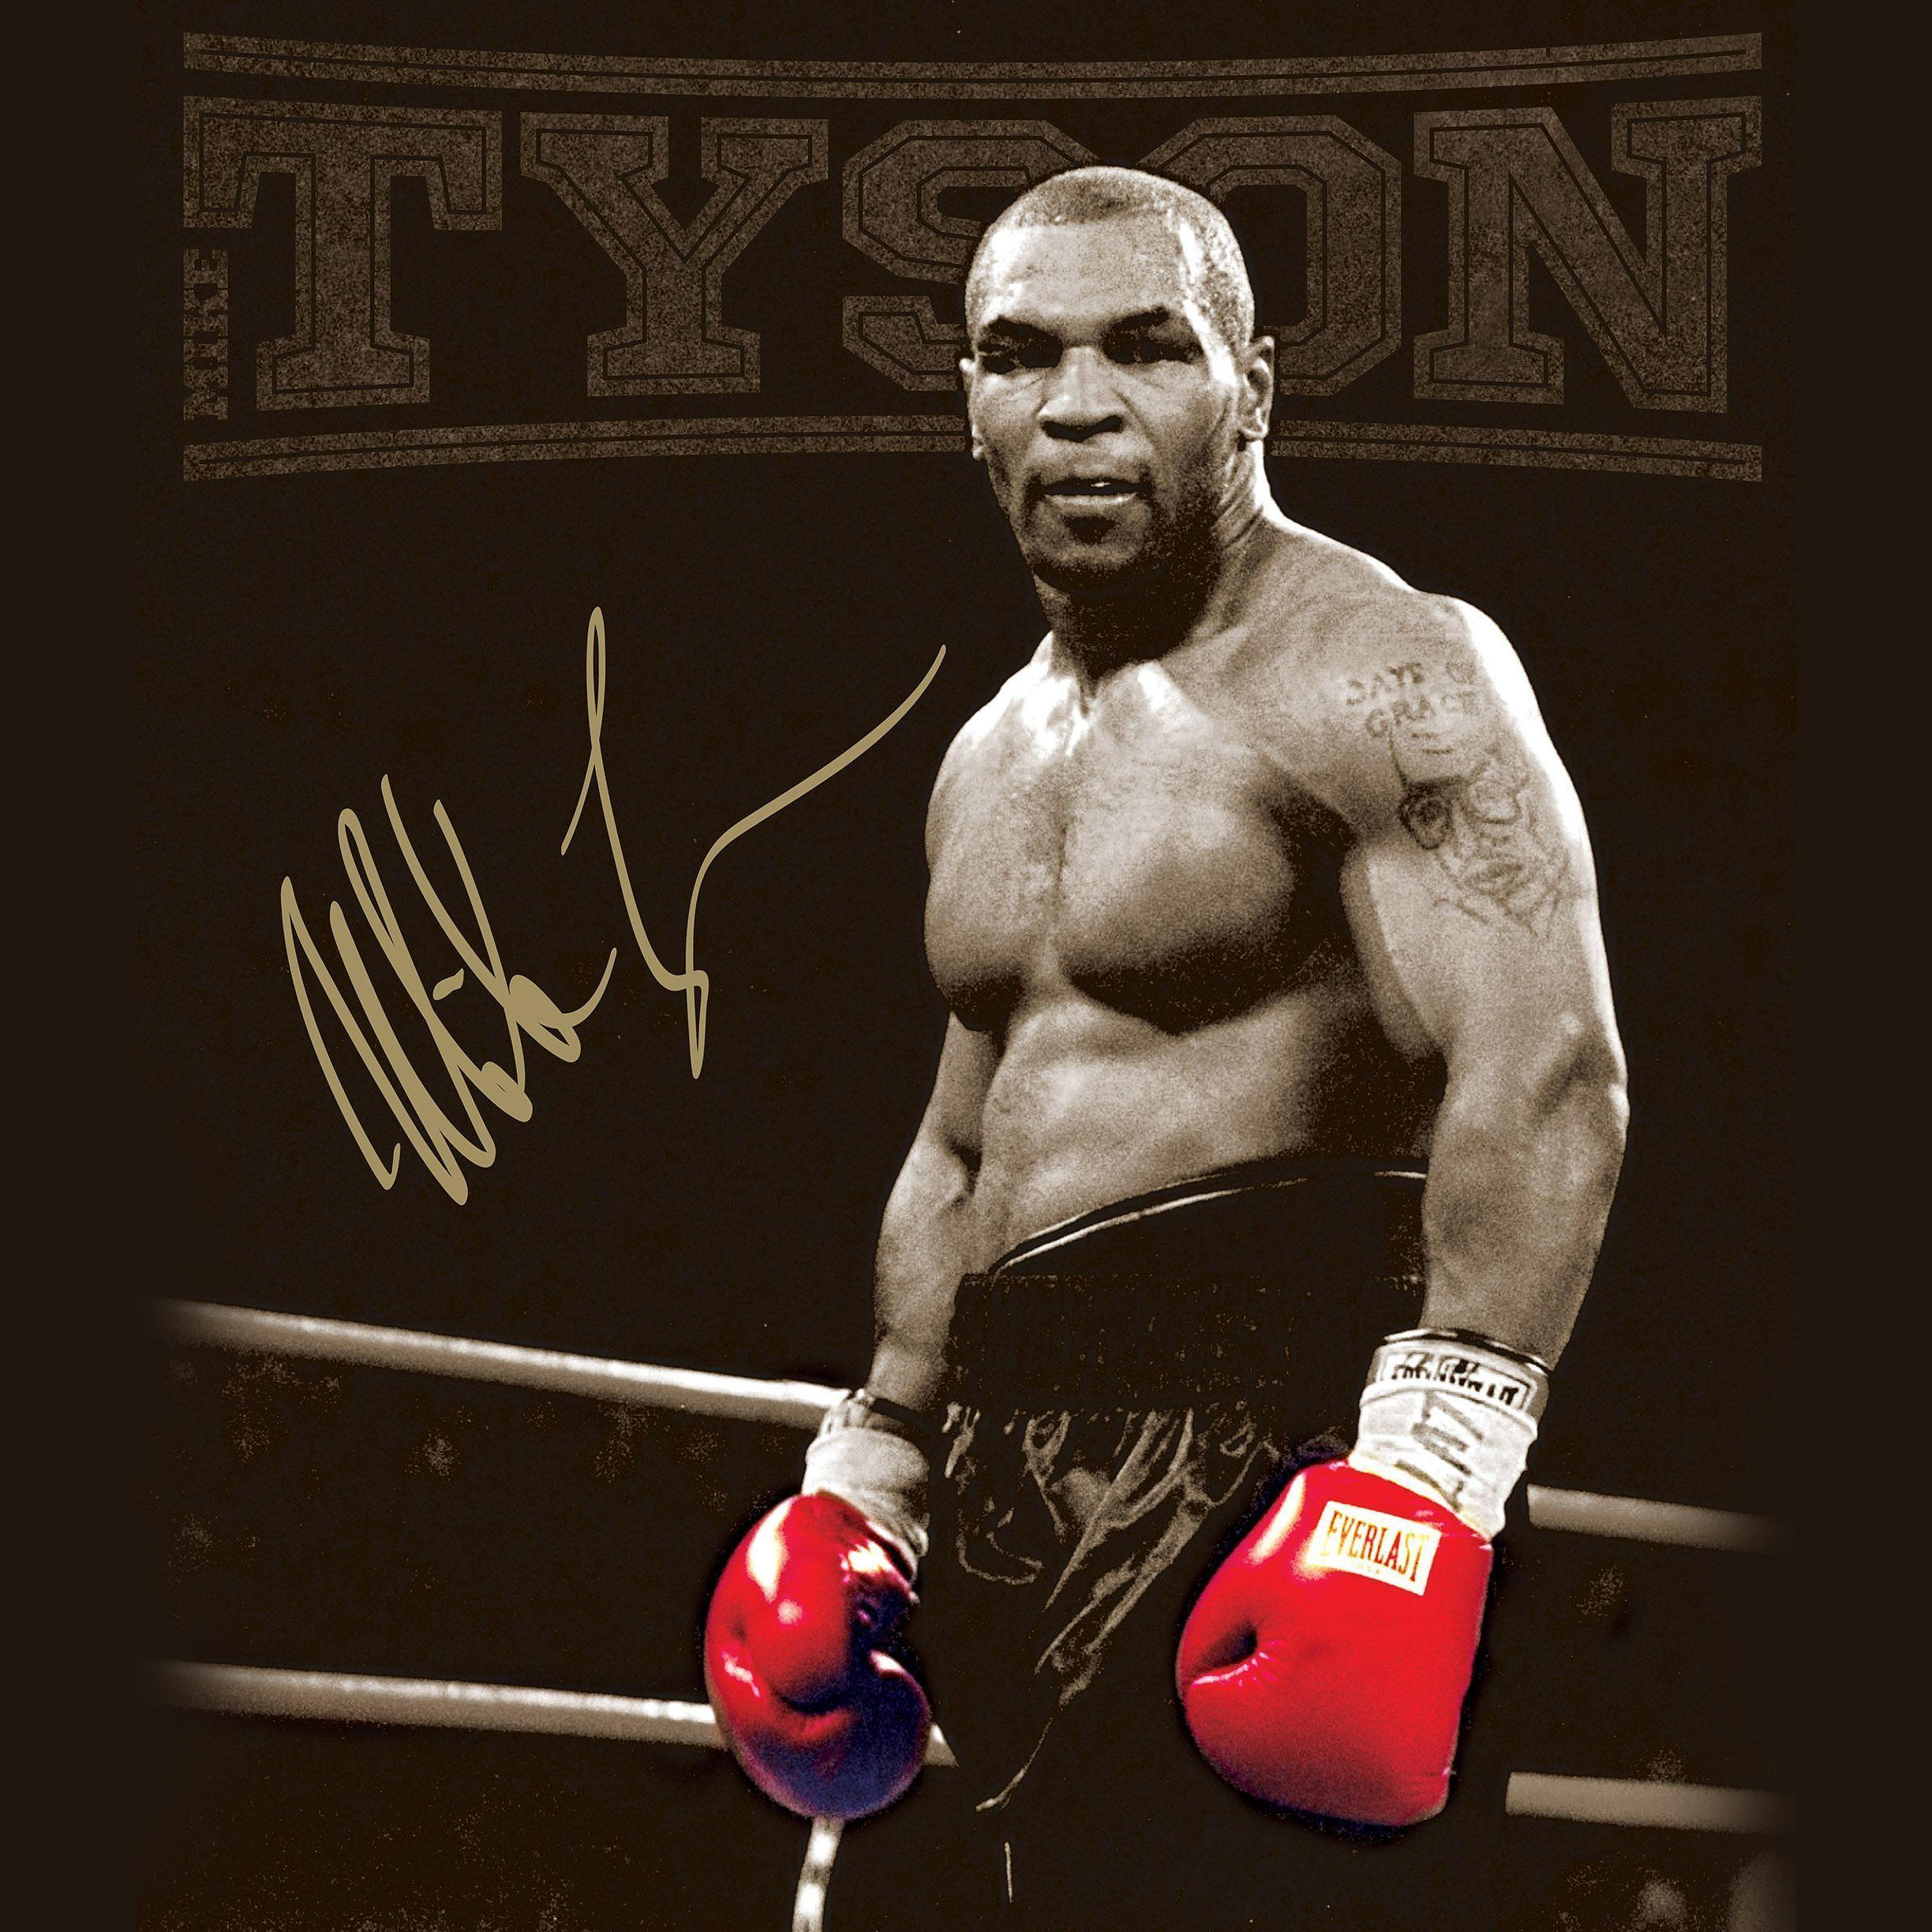 2448x2448 - Mike Tyson Wallpapers 3